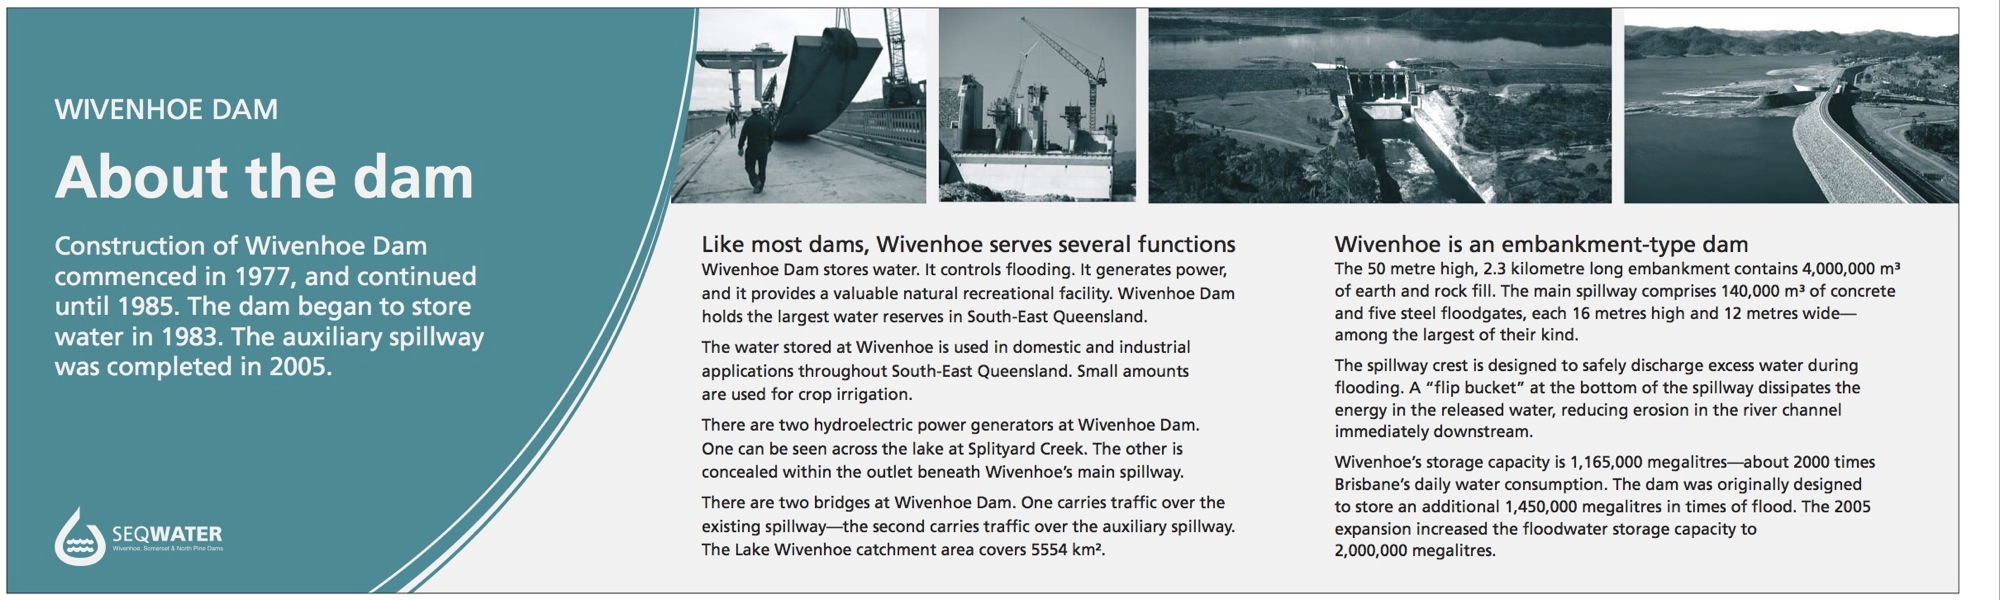 Wivenhoe Dam interpretive signage - About the dam